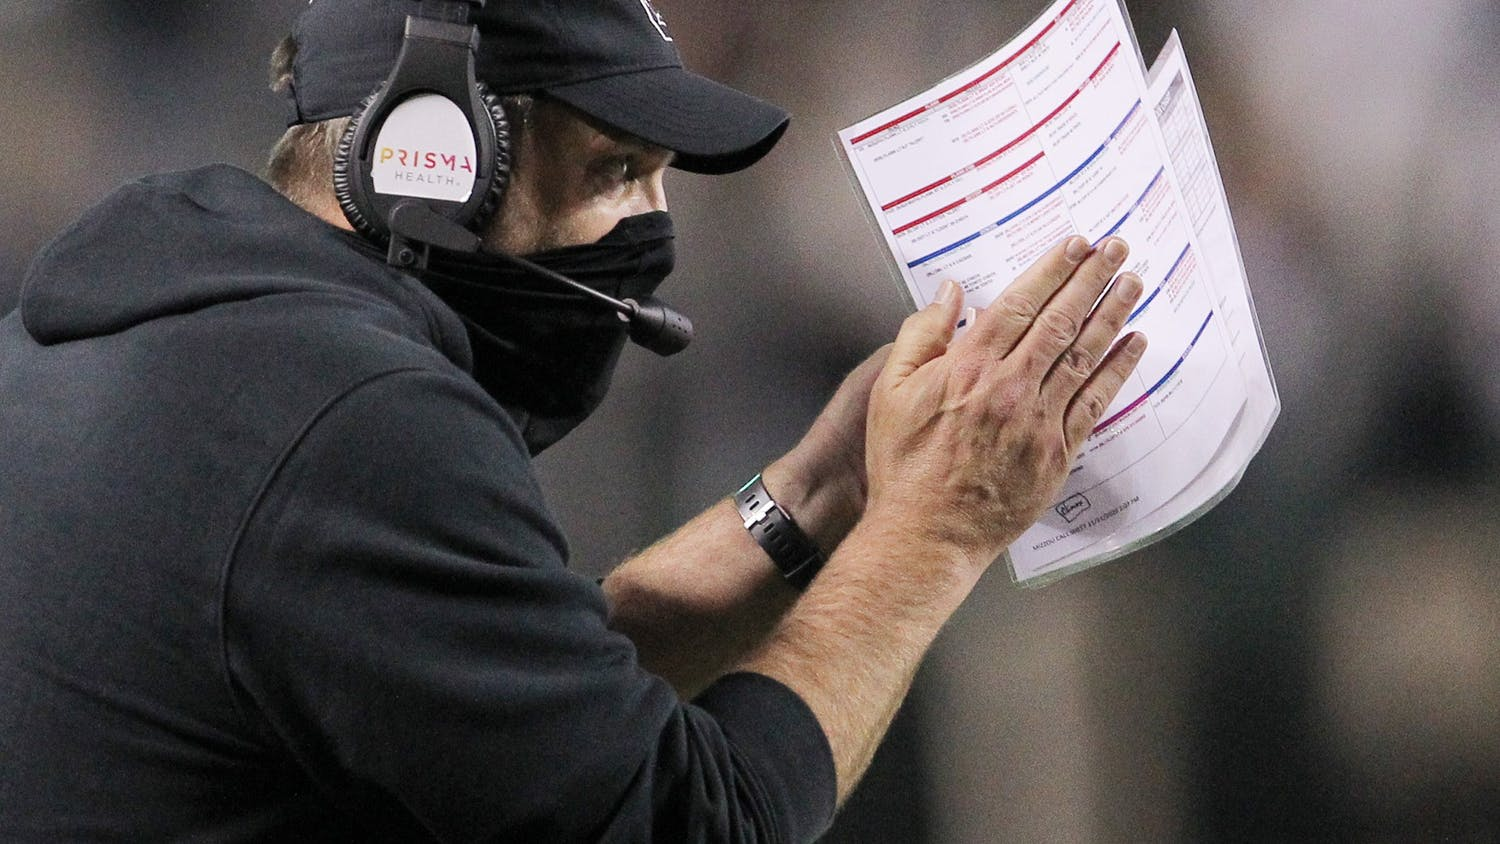 Interim head coach Mike Bobo calls to players from the sidelines during the Nov. 21 game against Missouri. The Gamecocks fell to 2-6 after the loss.